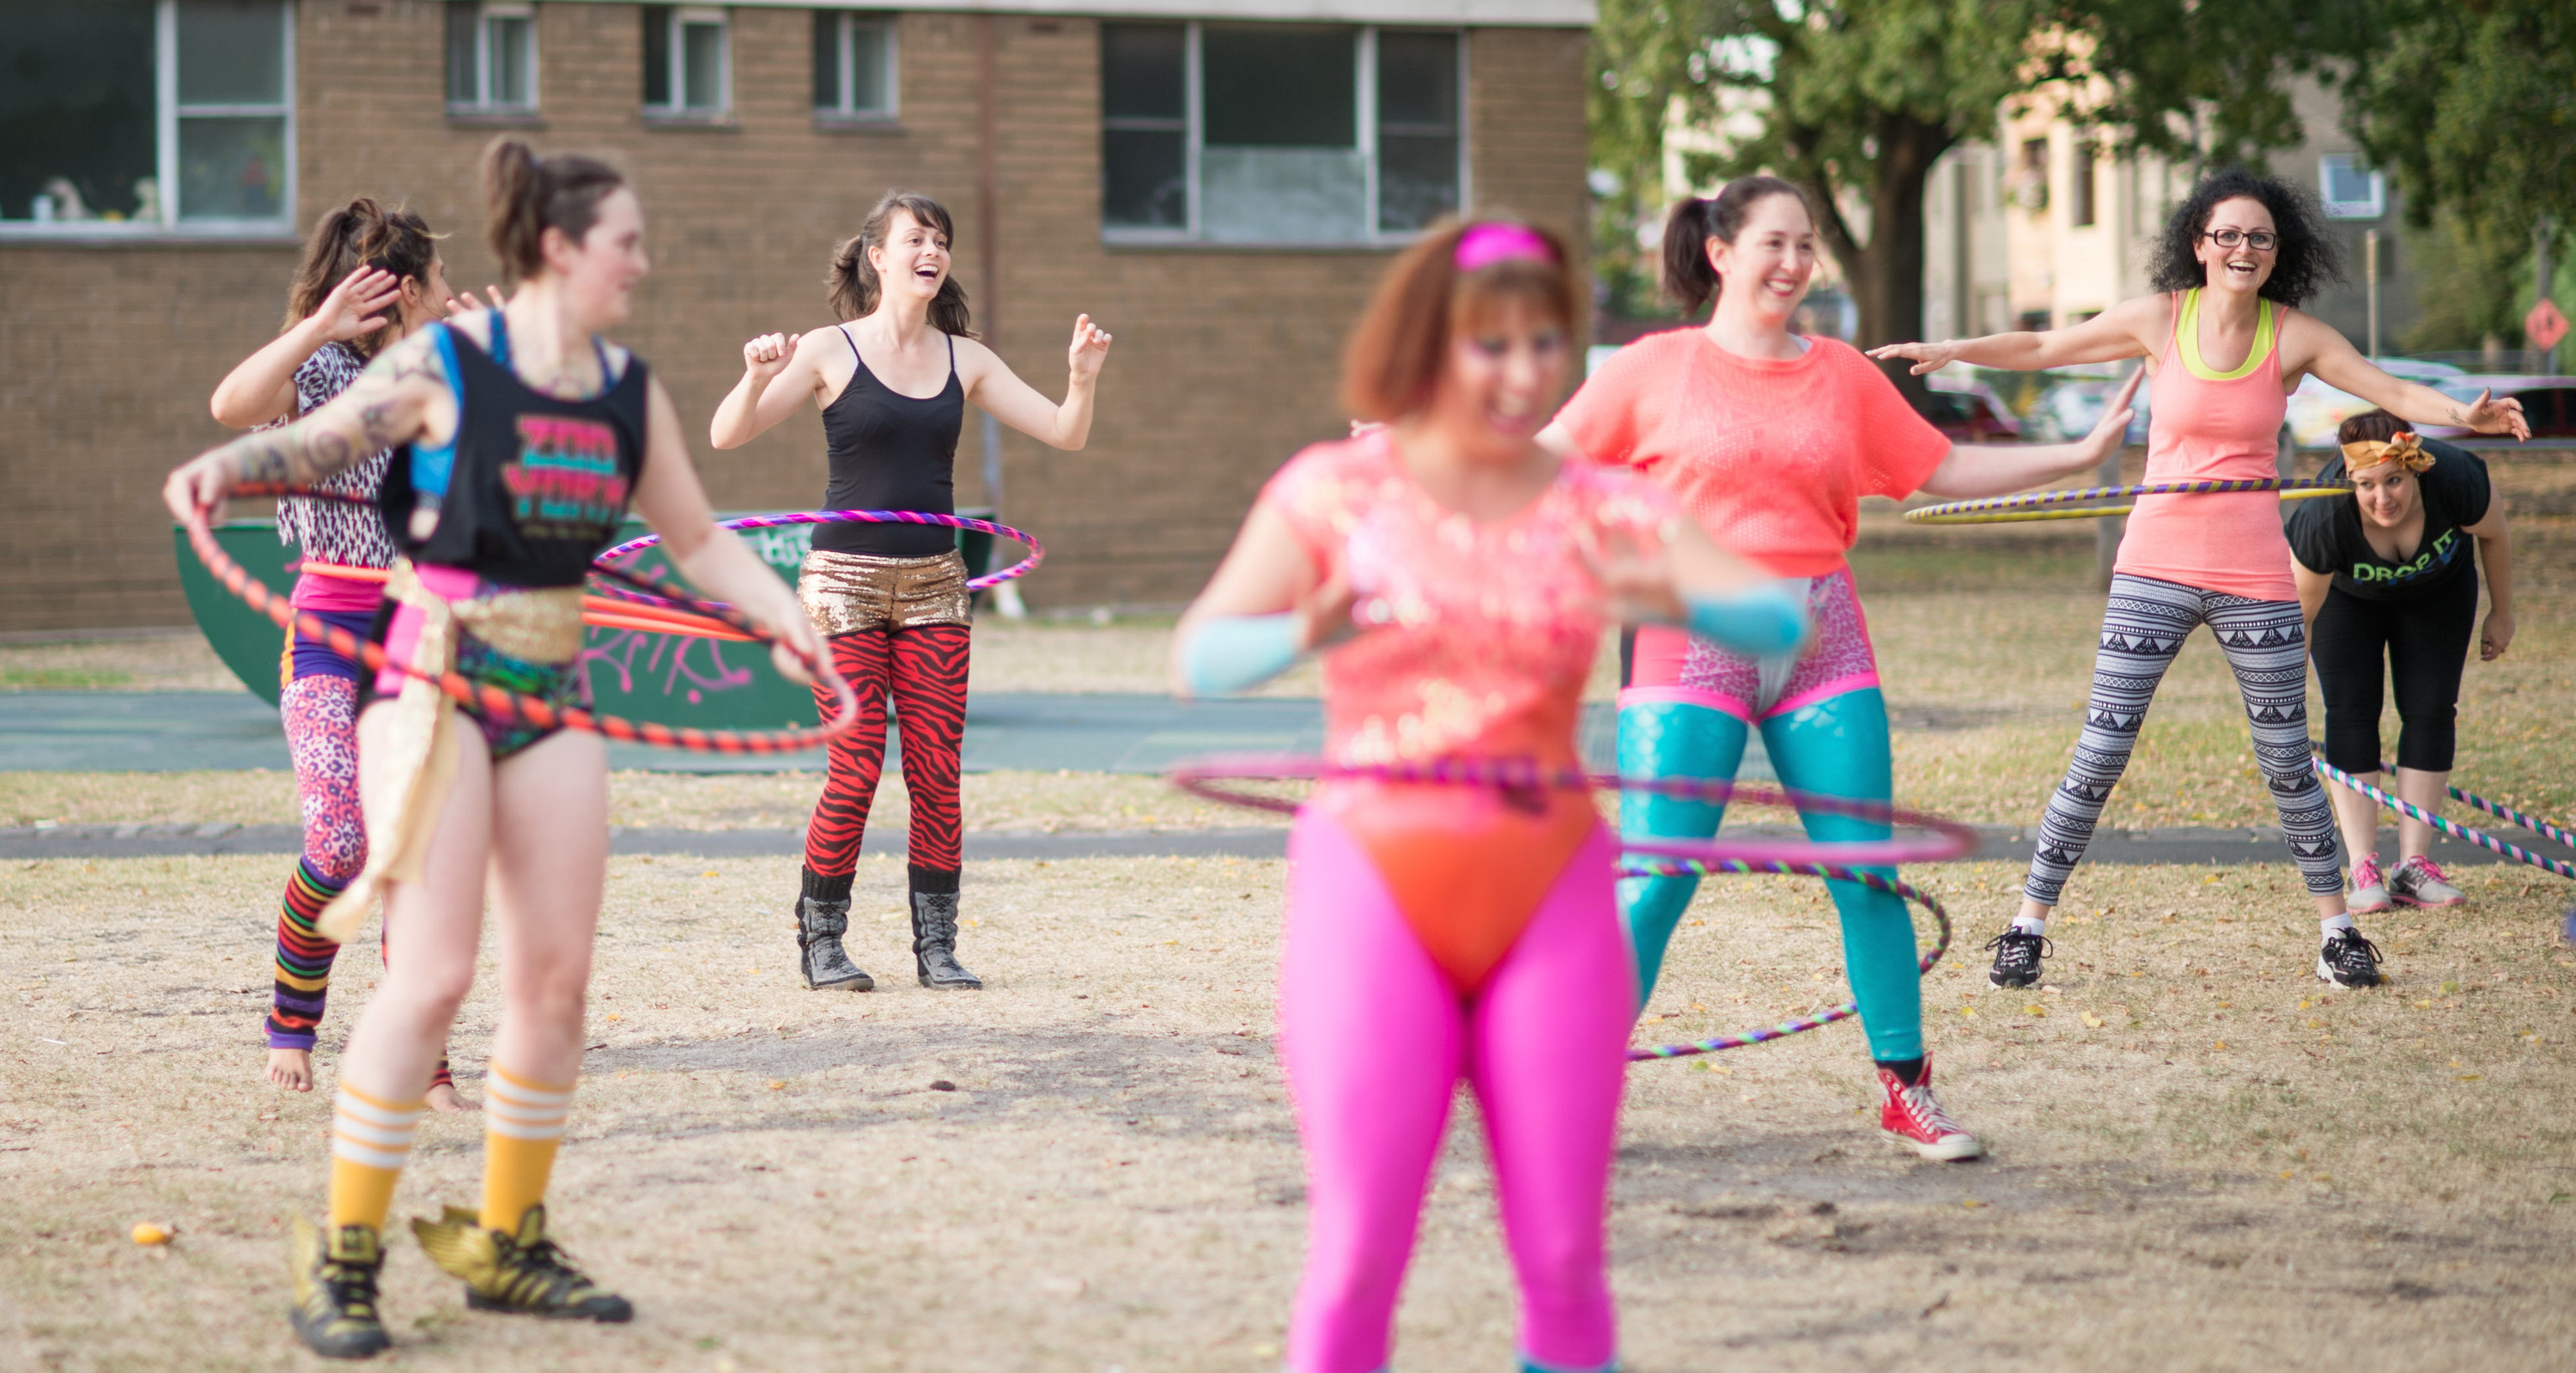 You can now do hula hoop exercise classes in Melbourne